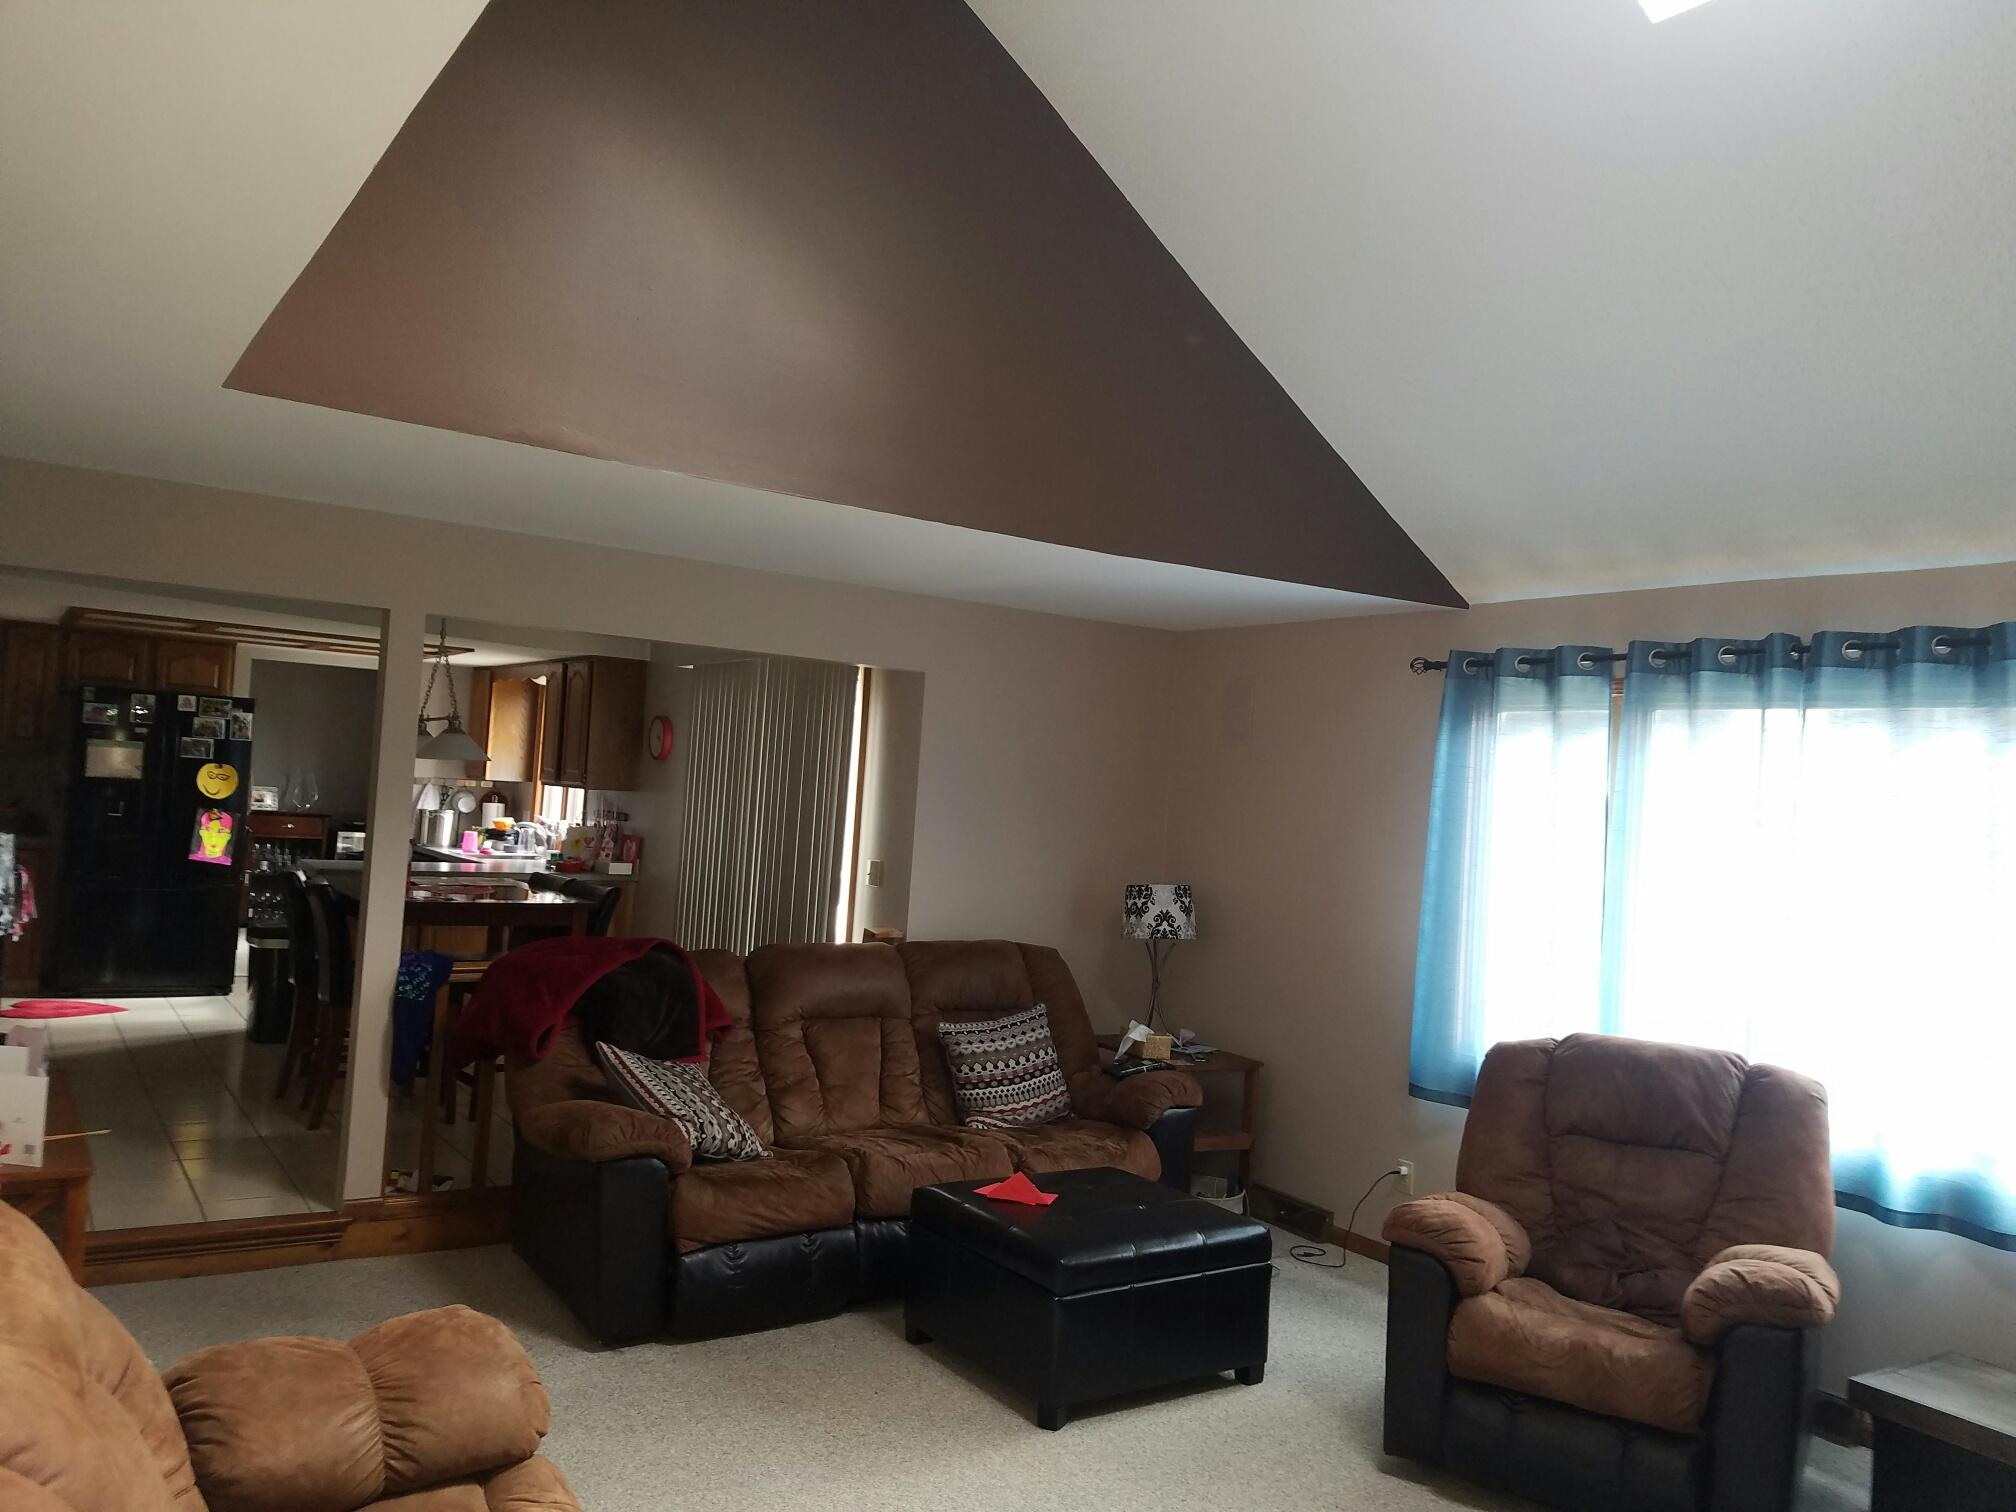 residential painting contractor - Buffalo, NY